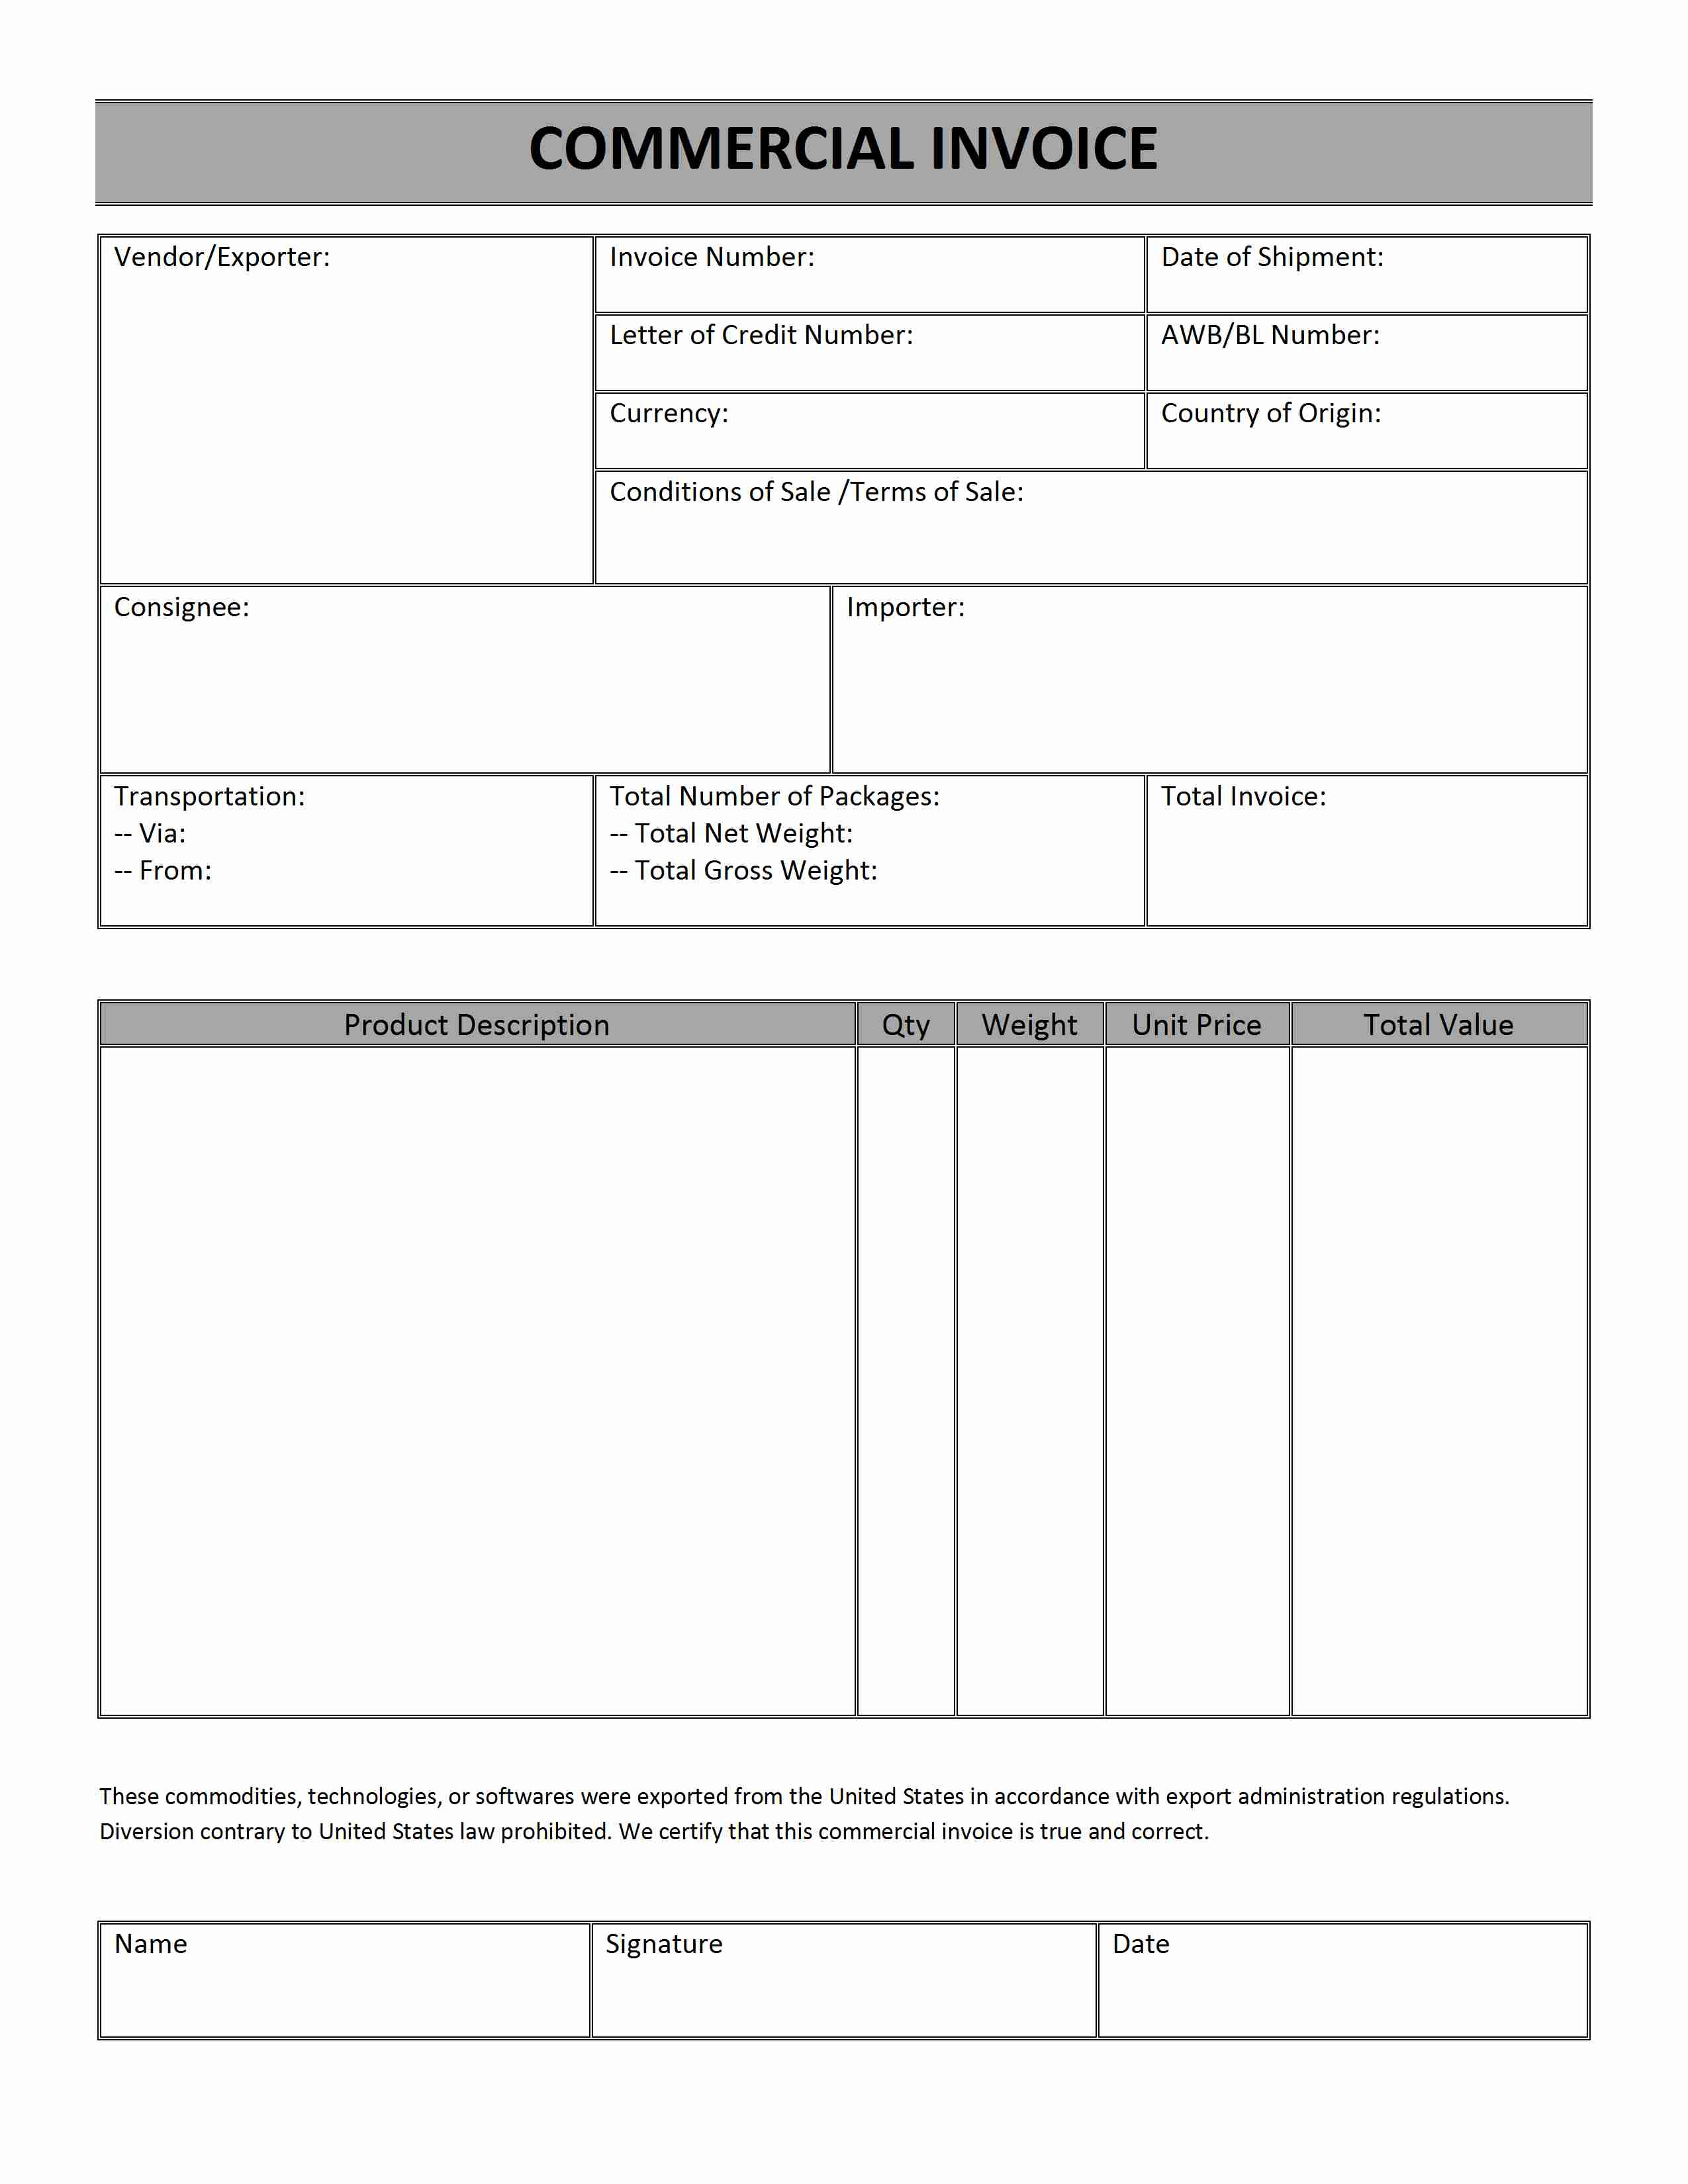 Opposenewapstandardsus  Remarkable Printable Sales Invoice Simple Invoice Form Free Invoice  With Likable Printable Receipt Free  Free Printable Raffle Tickets  Receipt   Printable With Attractive Rent Receipt Booklet Also Sponge Cake Receipt In Addition Receipt Format In Doc And Motorcycle Sales Receipt As Well As Eticket Receipt Additionally Credit Card Payment Receipt Template From Happytomco With Opposenewapstandardsus  Likable Printable Sales Invoice Simple Invoice Form Free Invoice  With Attractive Printable Receipt Free  Free Printable Raffle Tickets  Receipt   Printable And Remarkable Rent Receipt Booklet Also Sponge Cake Receipt In Addition Receipt Format In Doc From Happytomco